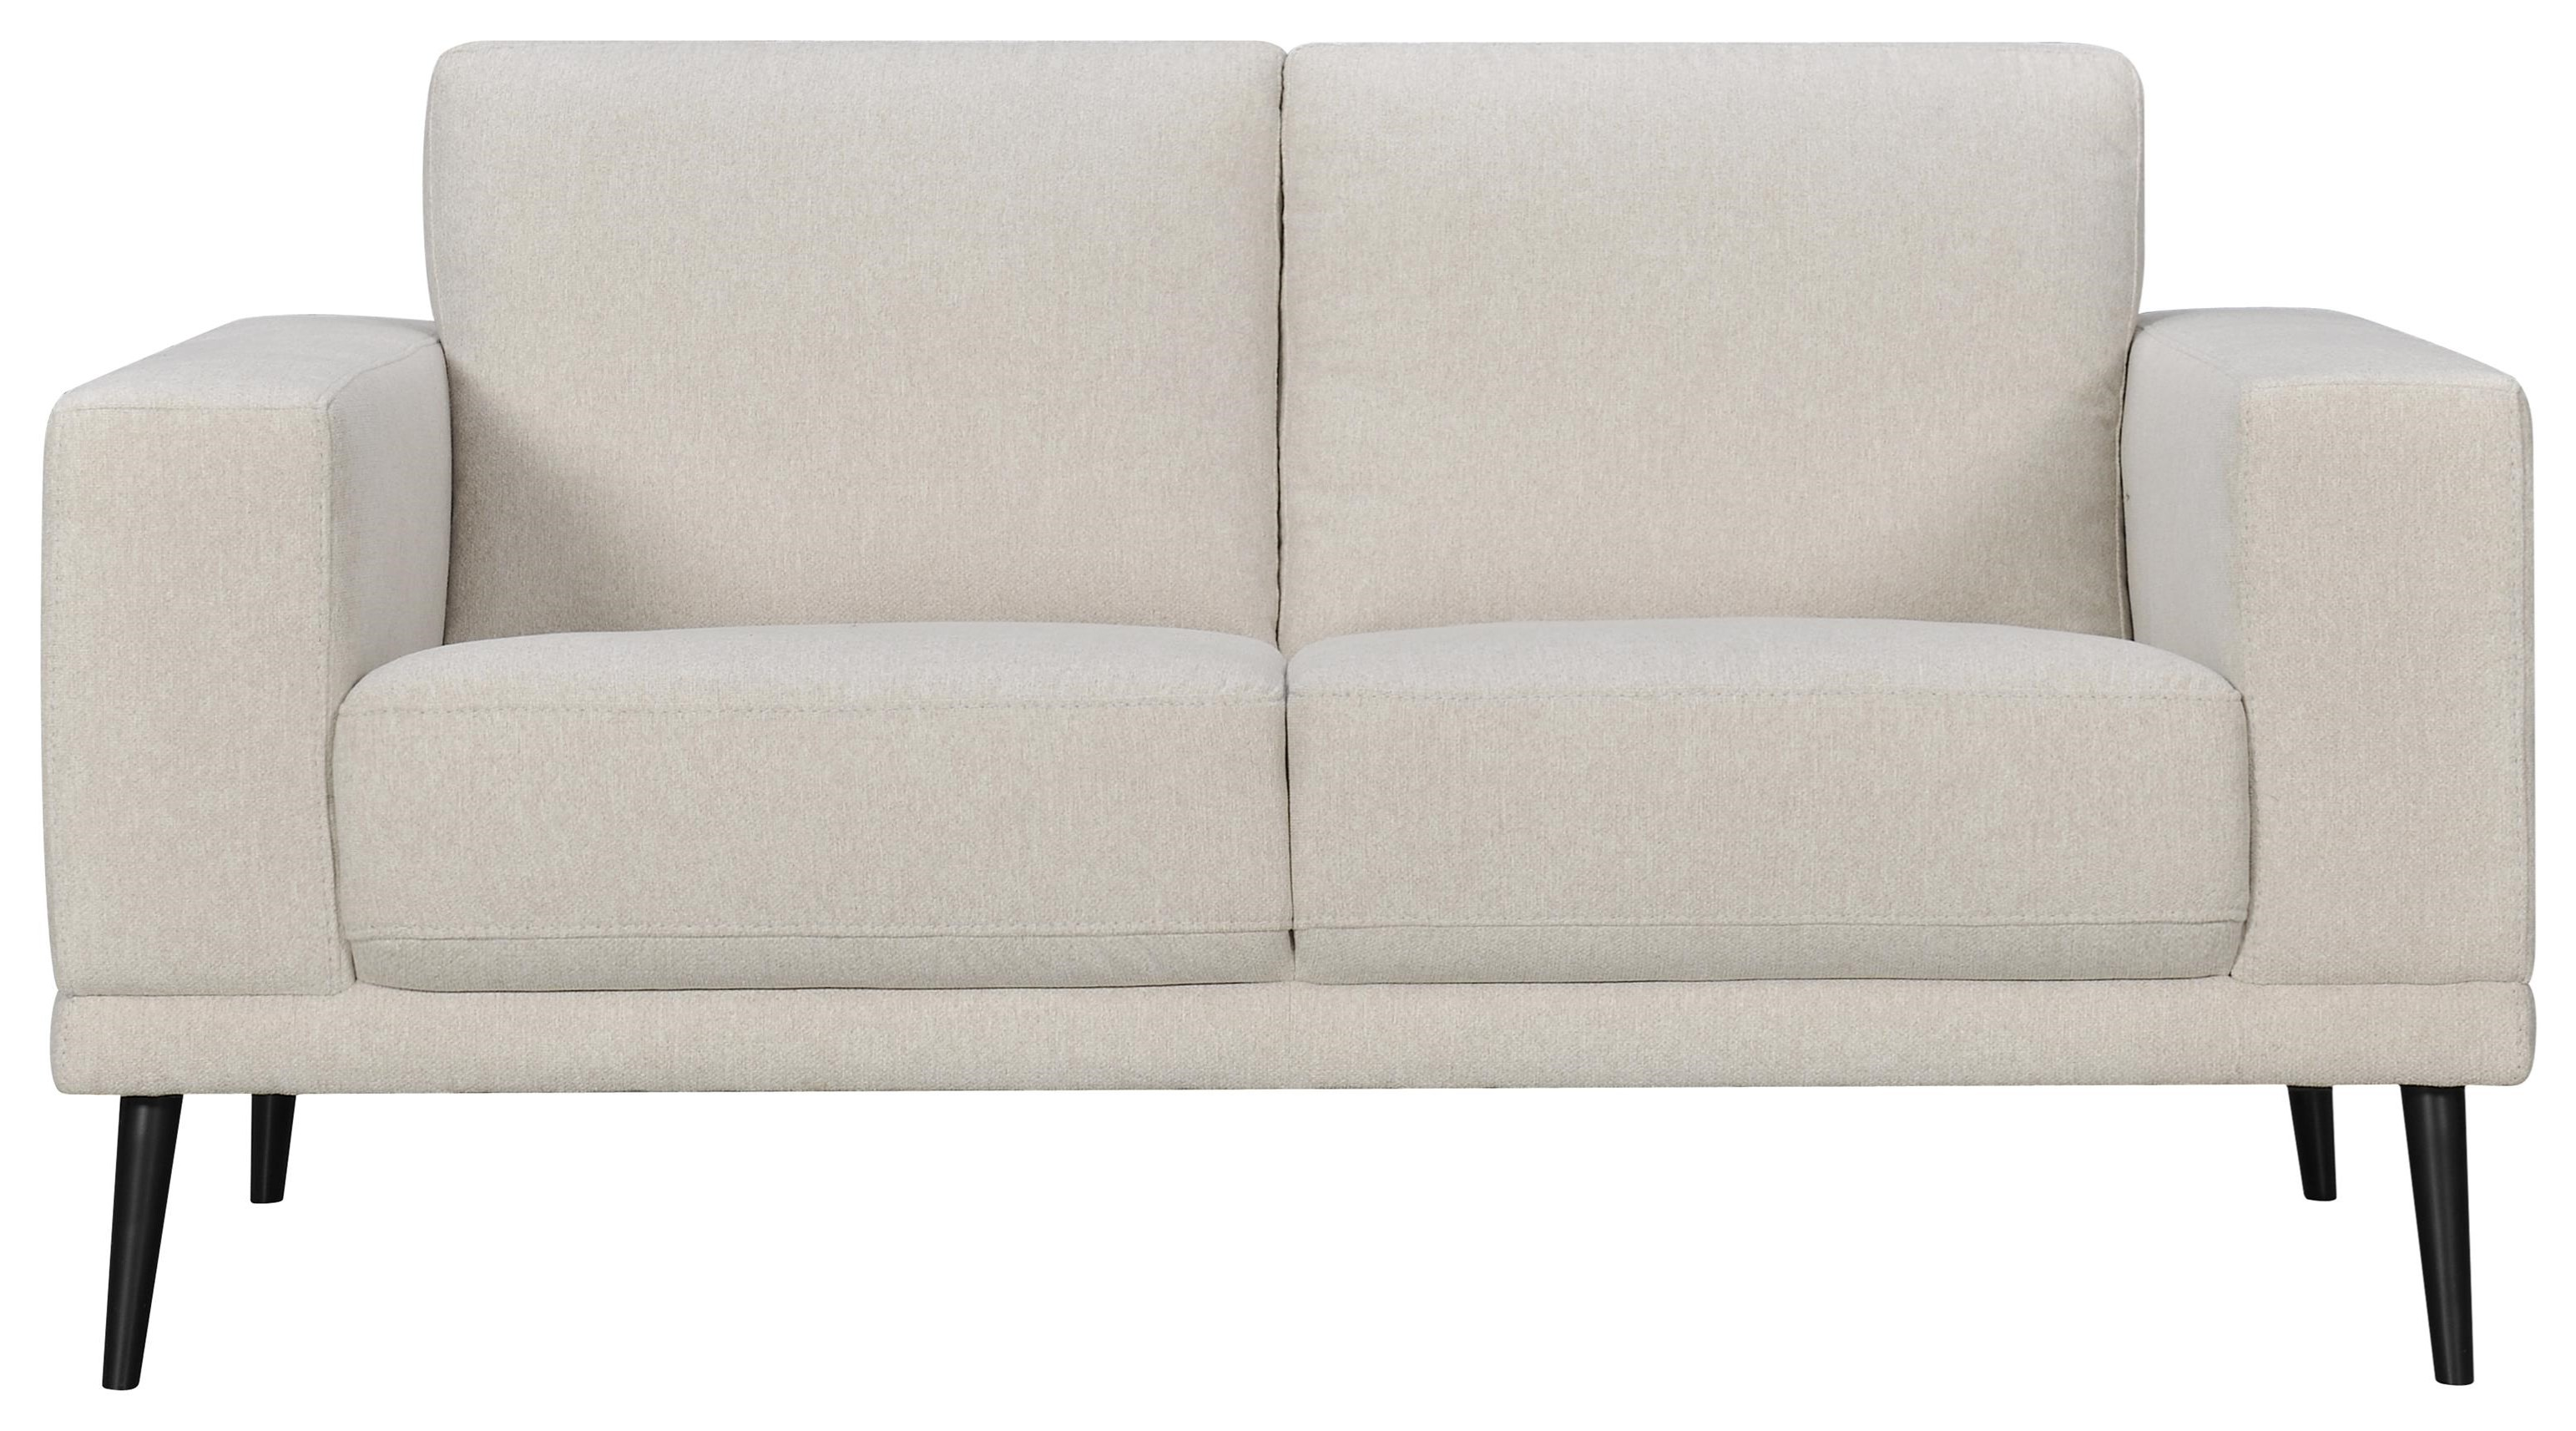 Harlow Loveseat by Violino at Red Knot